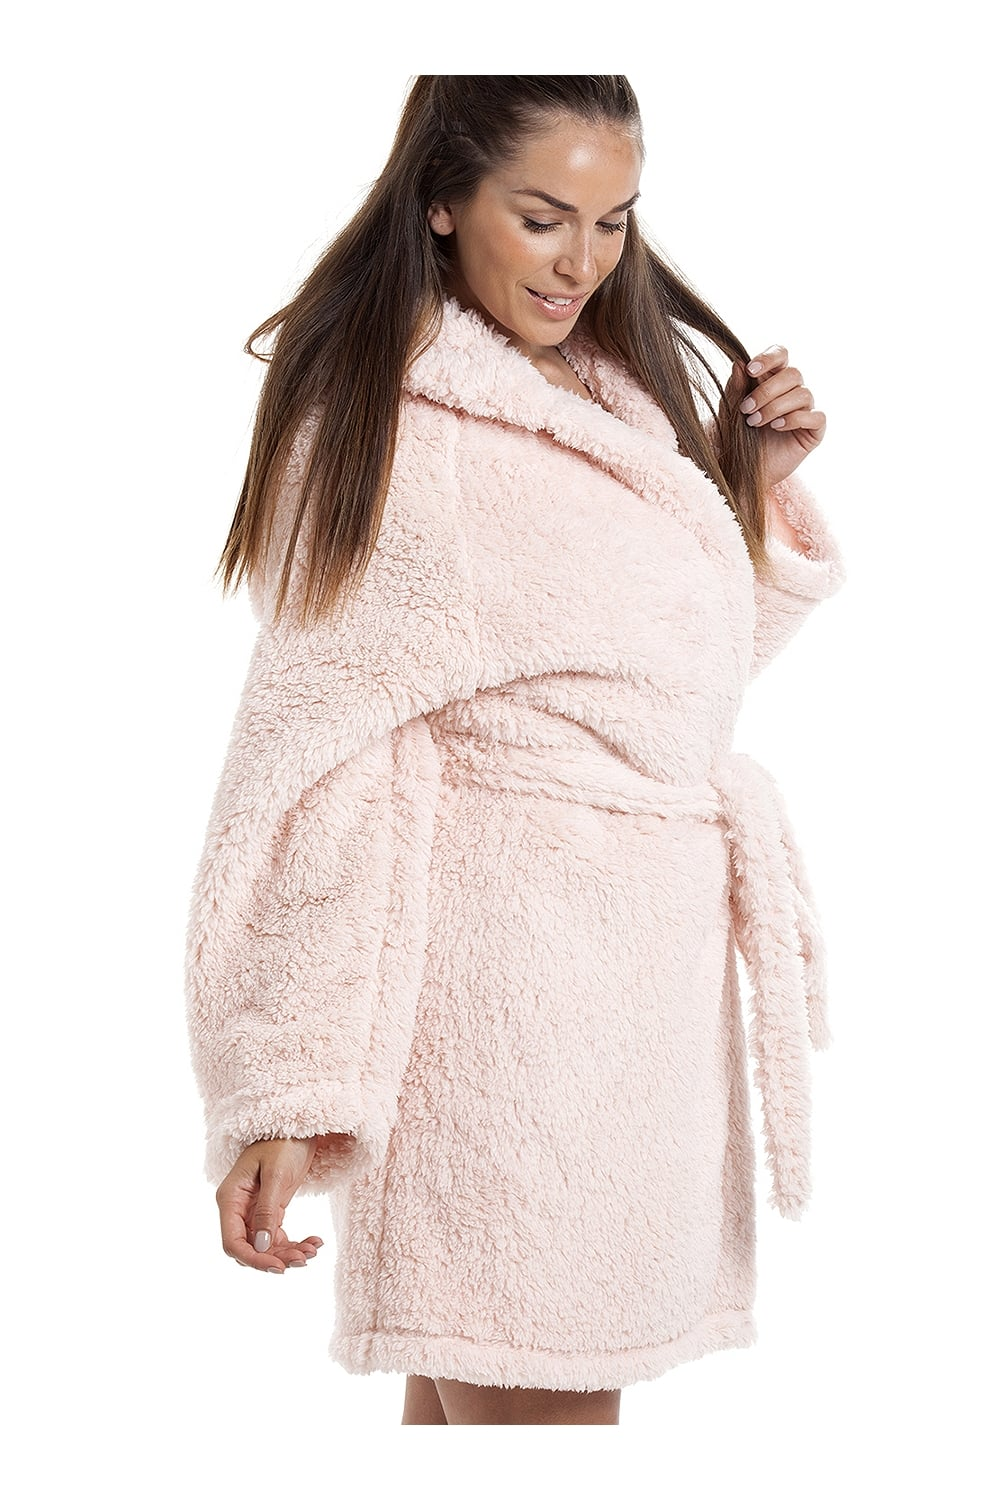 Shop Matalan's collection of cosy women's dressing gowns in a variety of fabrics & styles. Perfect for easy mornings & lounging in style! By browsing Matalan, you agree to our use of cookies.